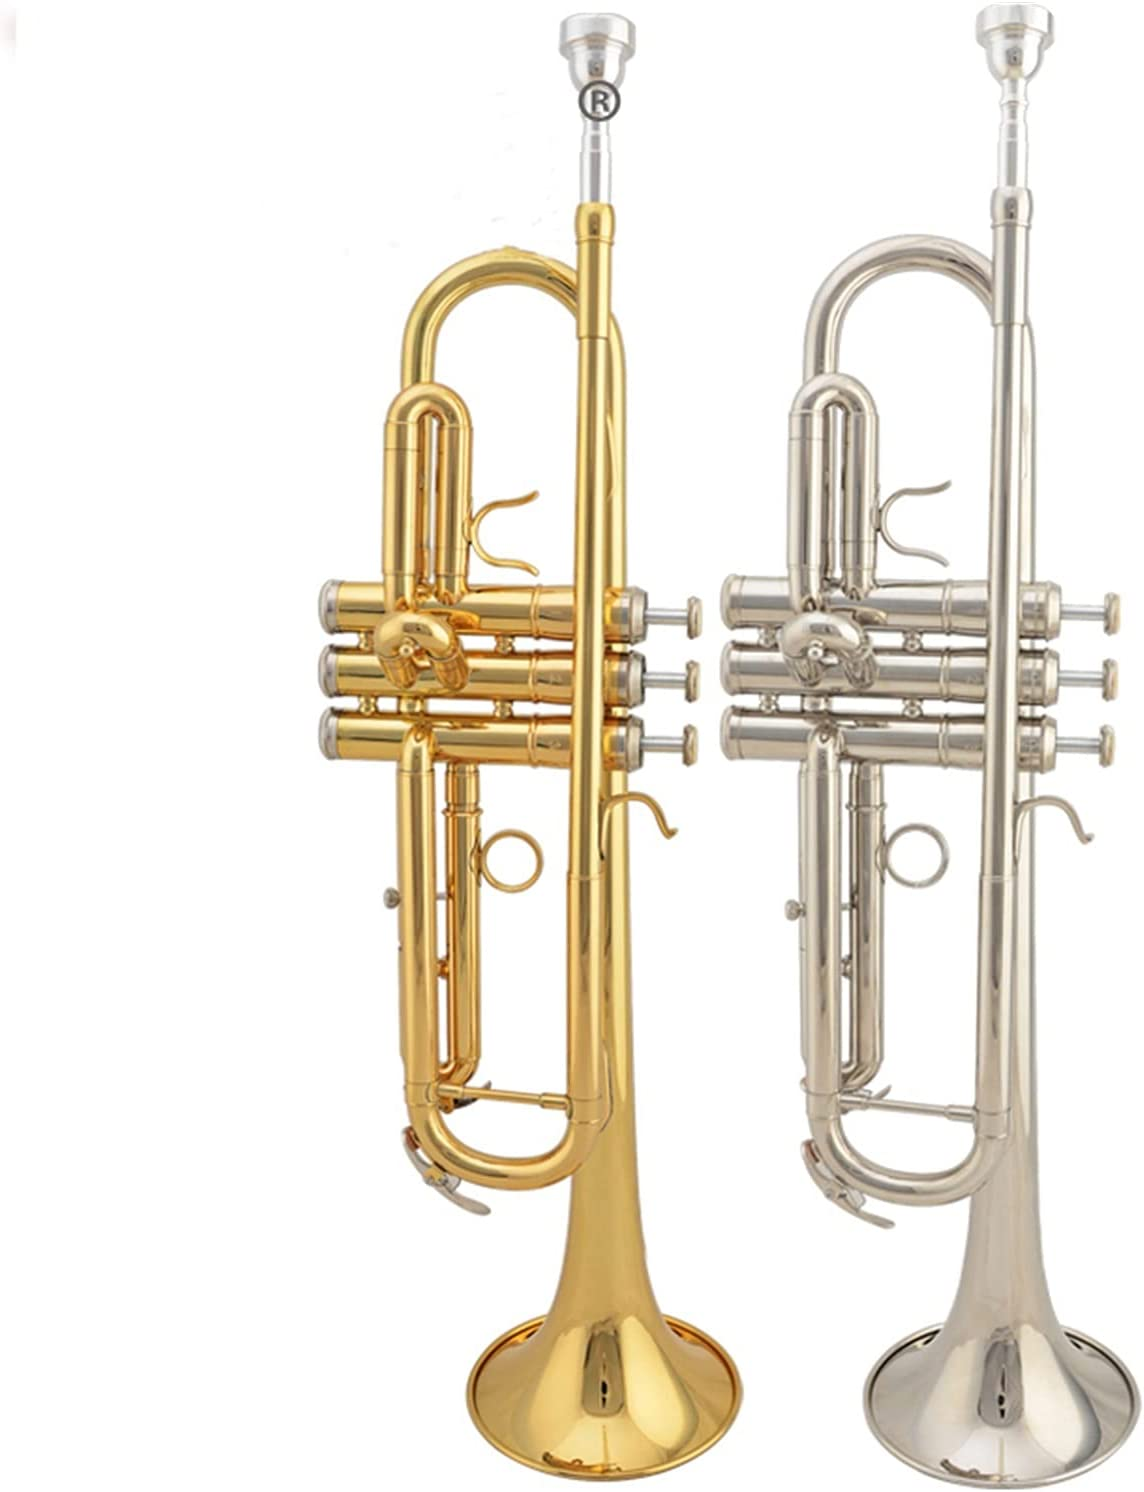 B Selling and selling Flat Gold Lacquer Trumpet Brass Case Cash special price Wind Instruments with